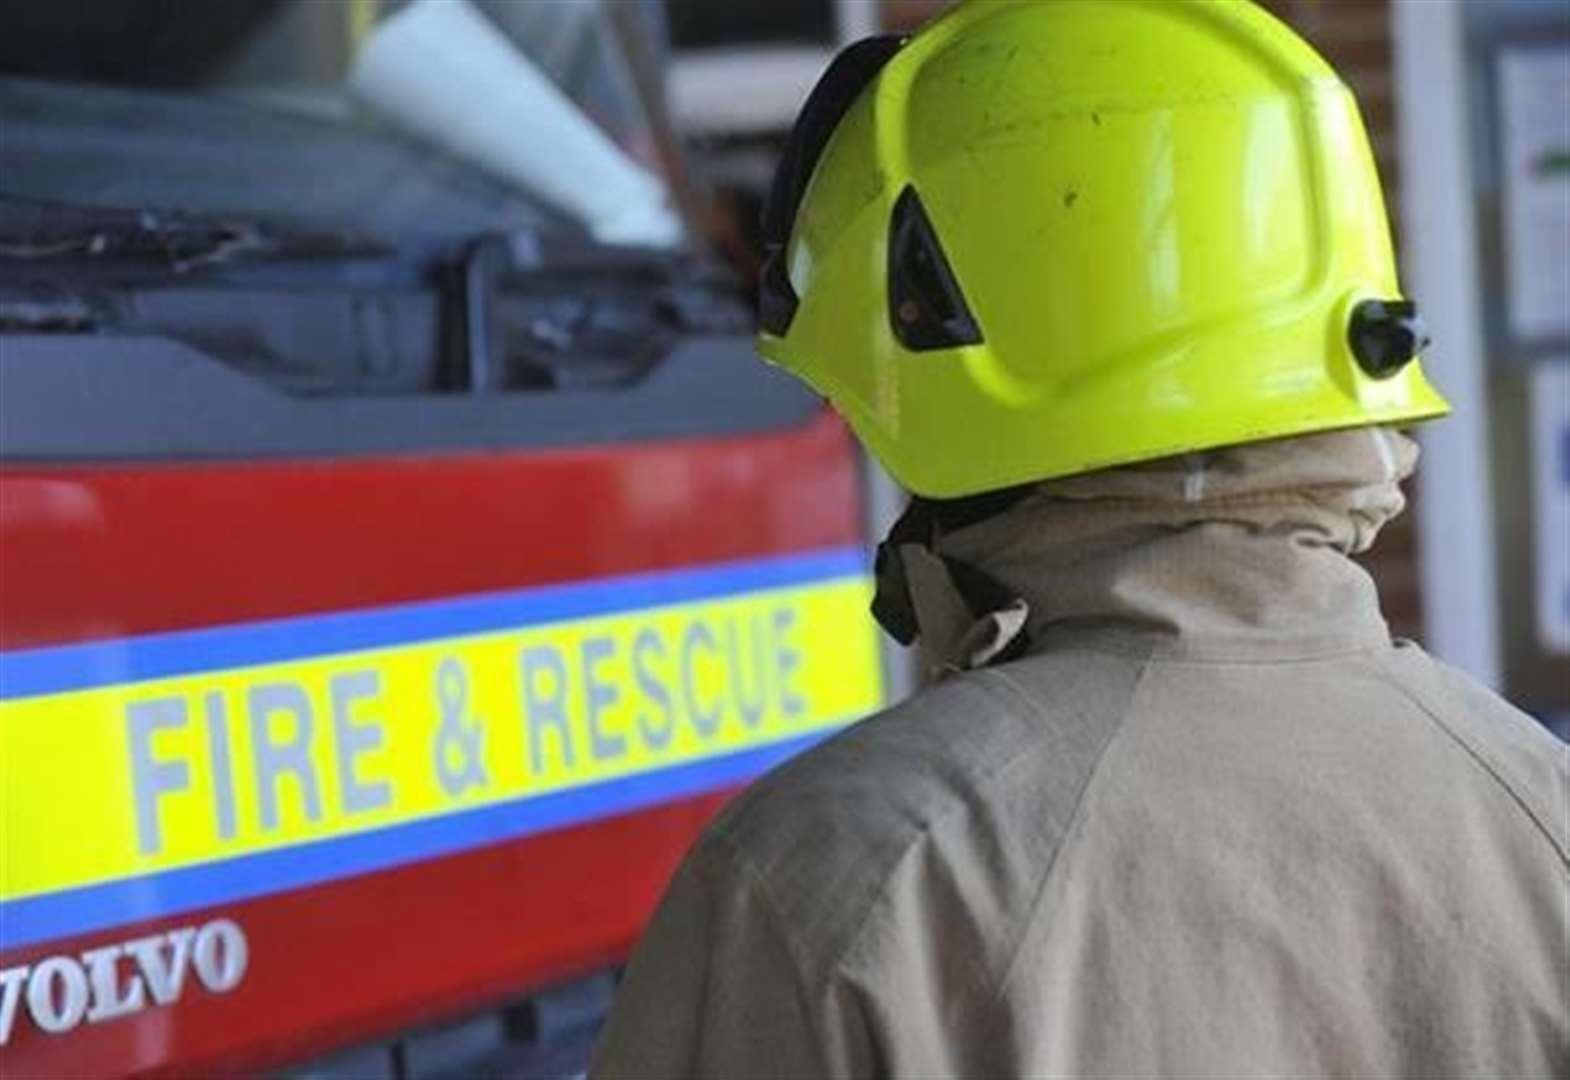 Fire service 'must do better', say inspectors